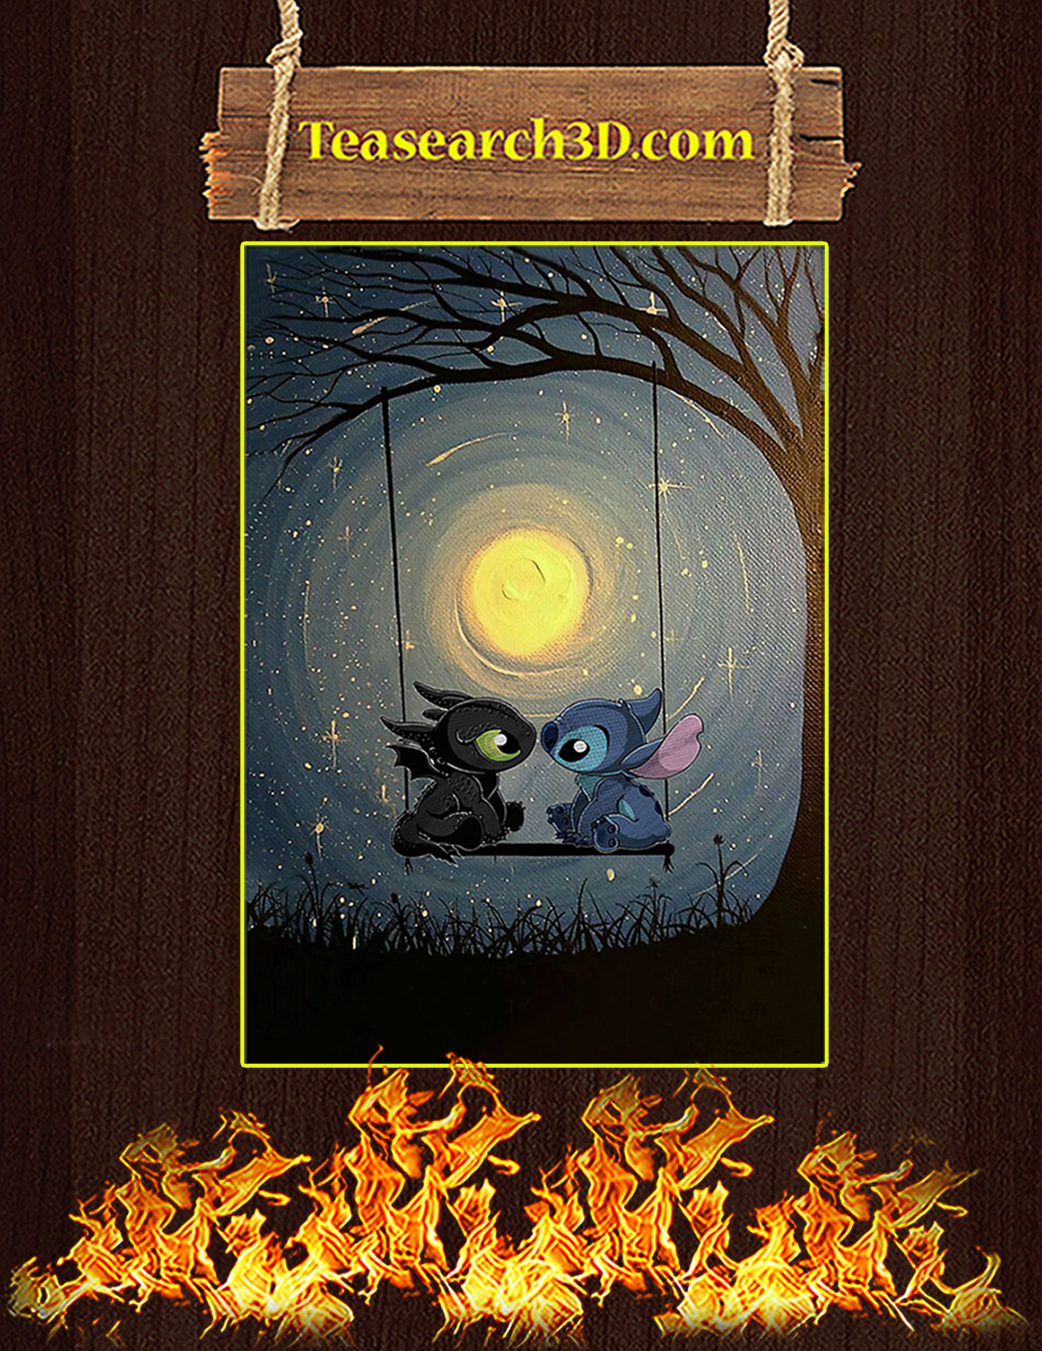 Stitch and toothless talking to the moon poster A1